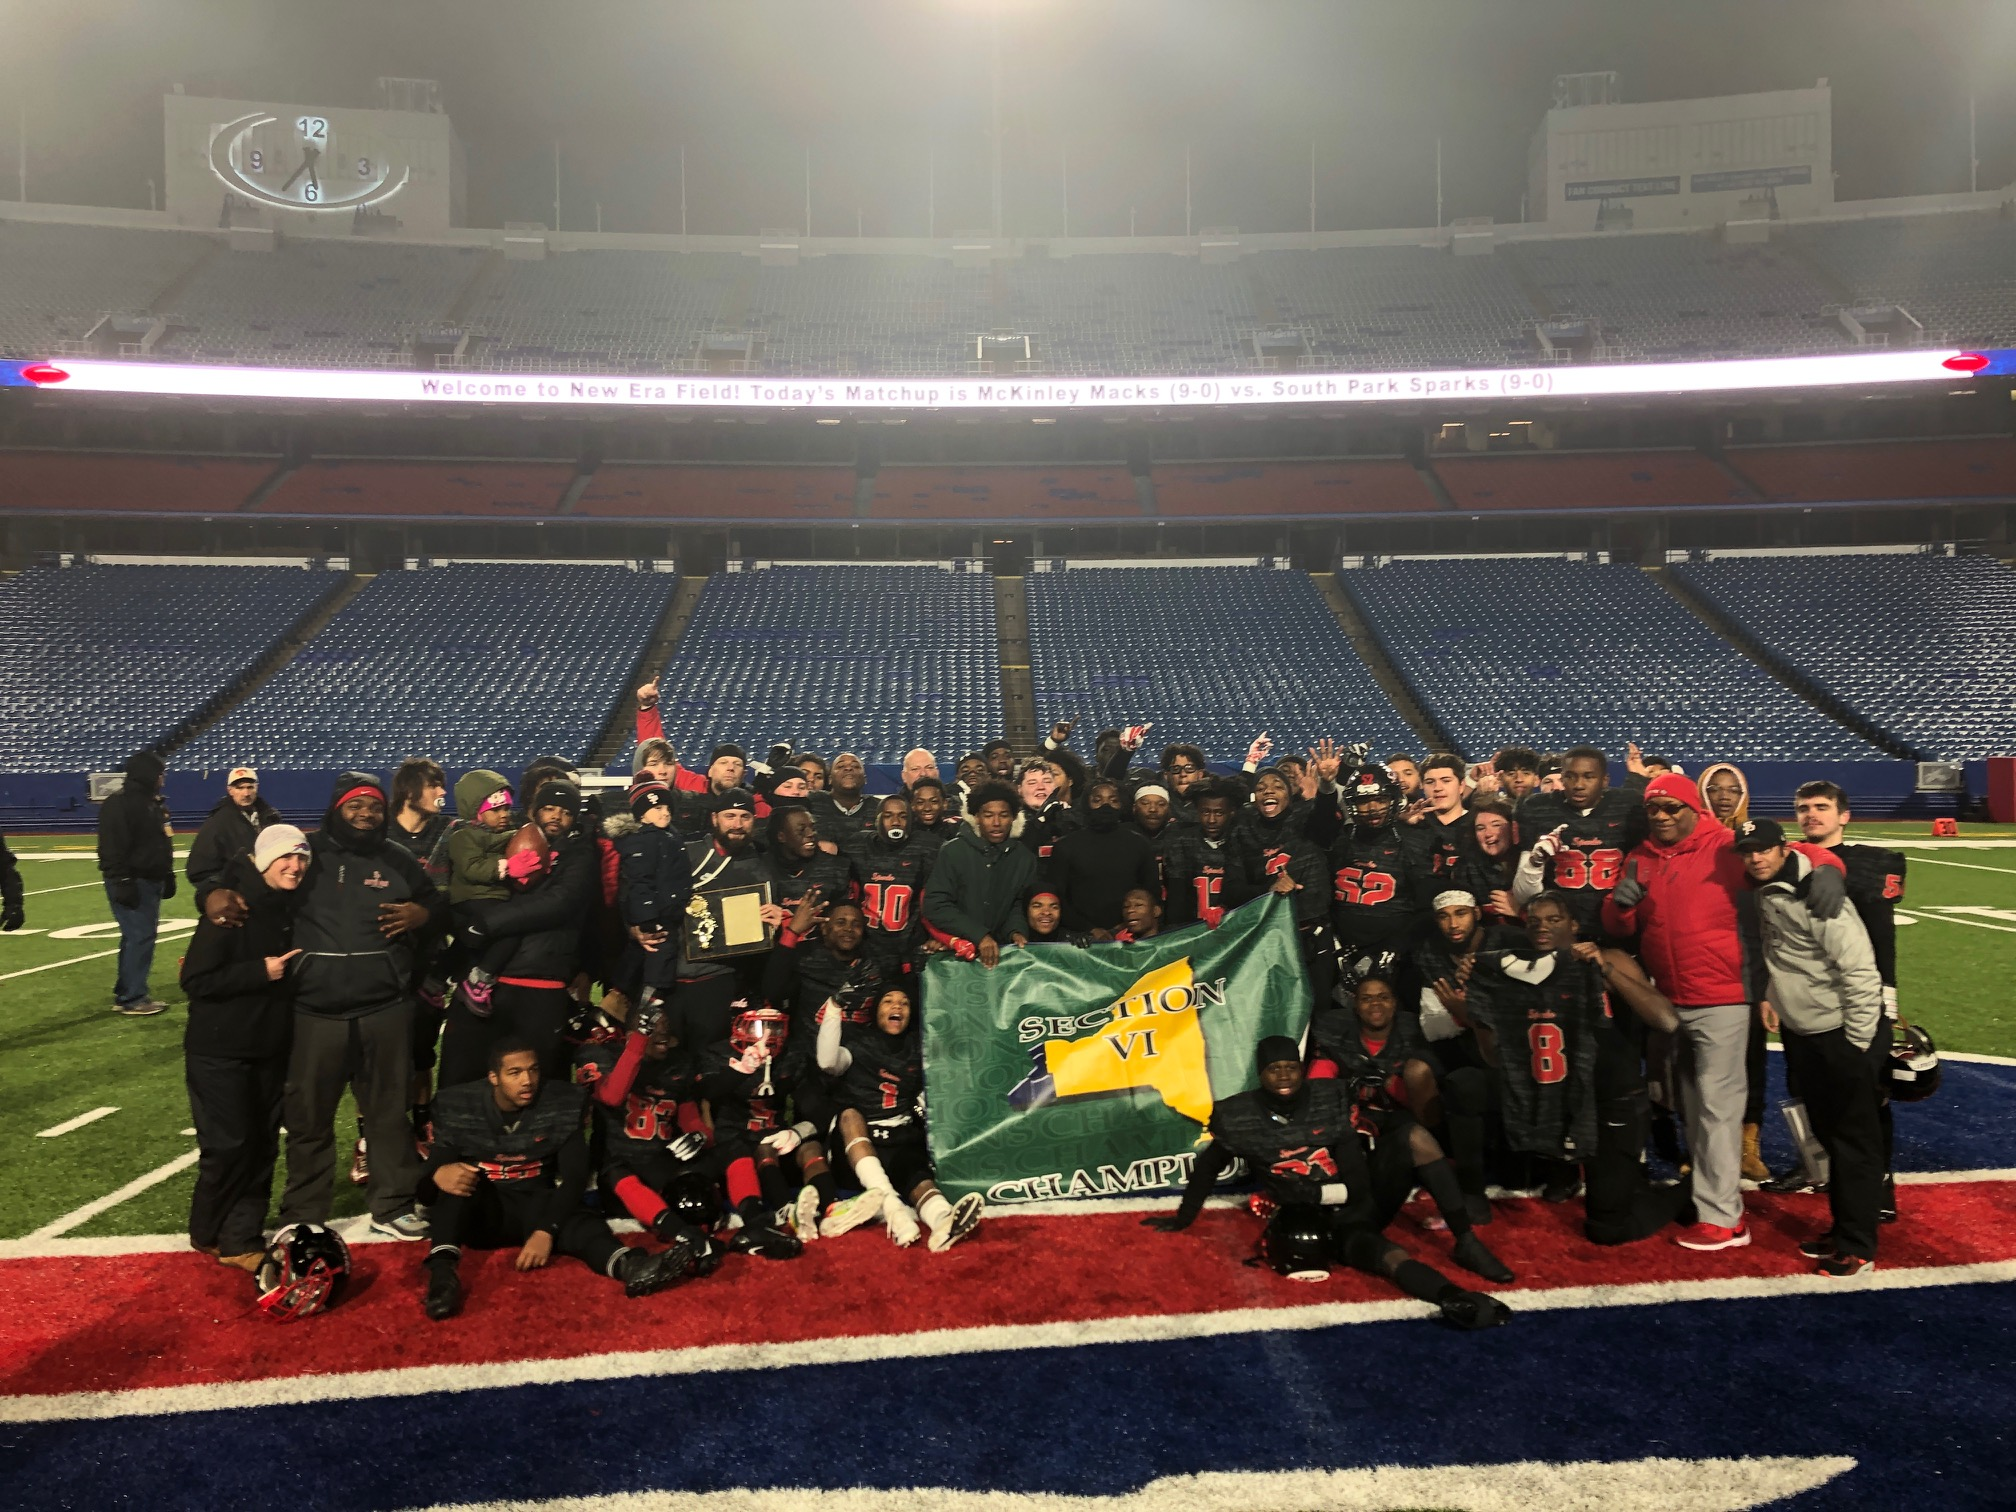 South Park Puts Up 38 First Half Points, Rolls to Class A Title